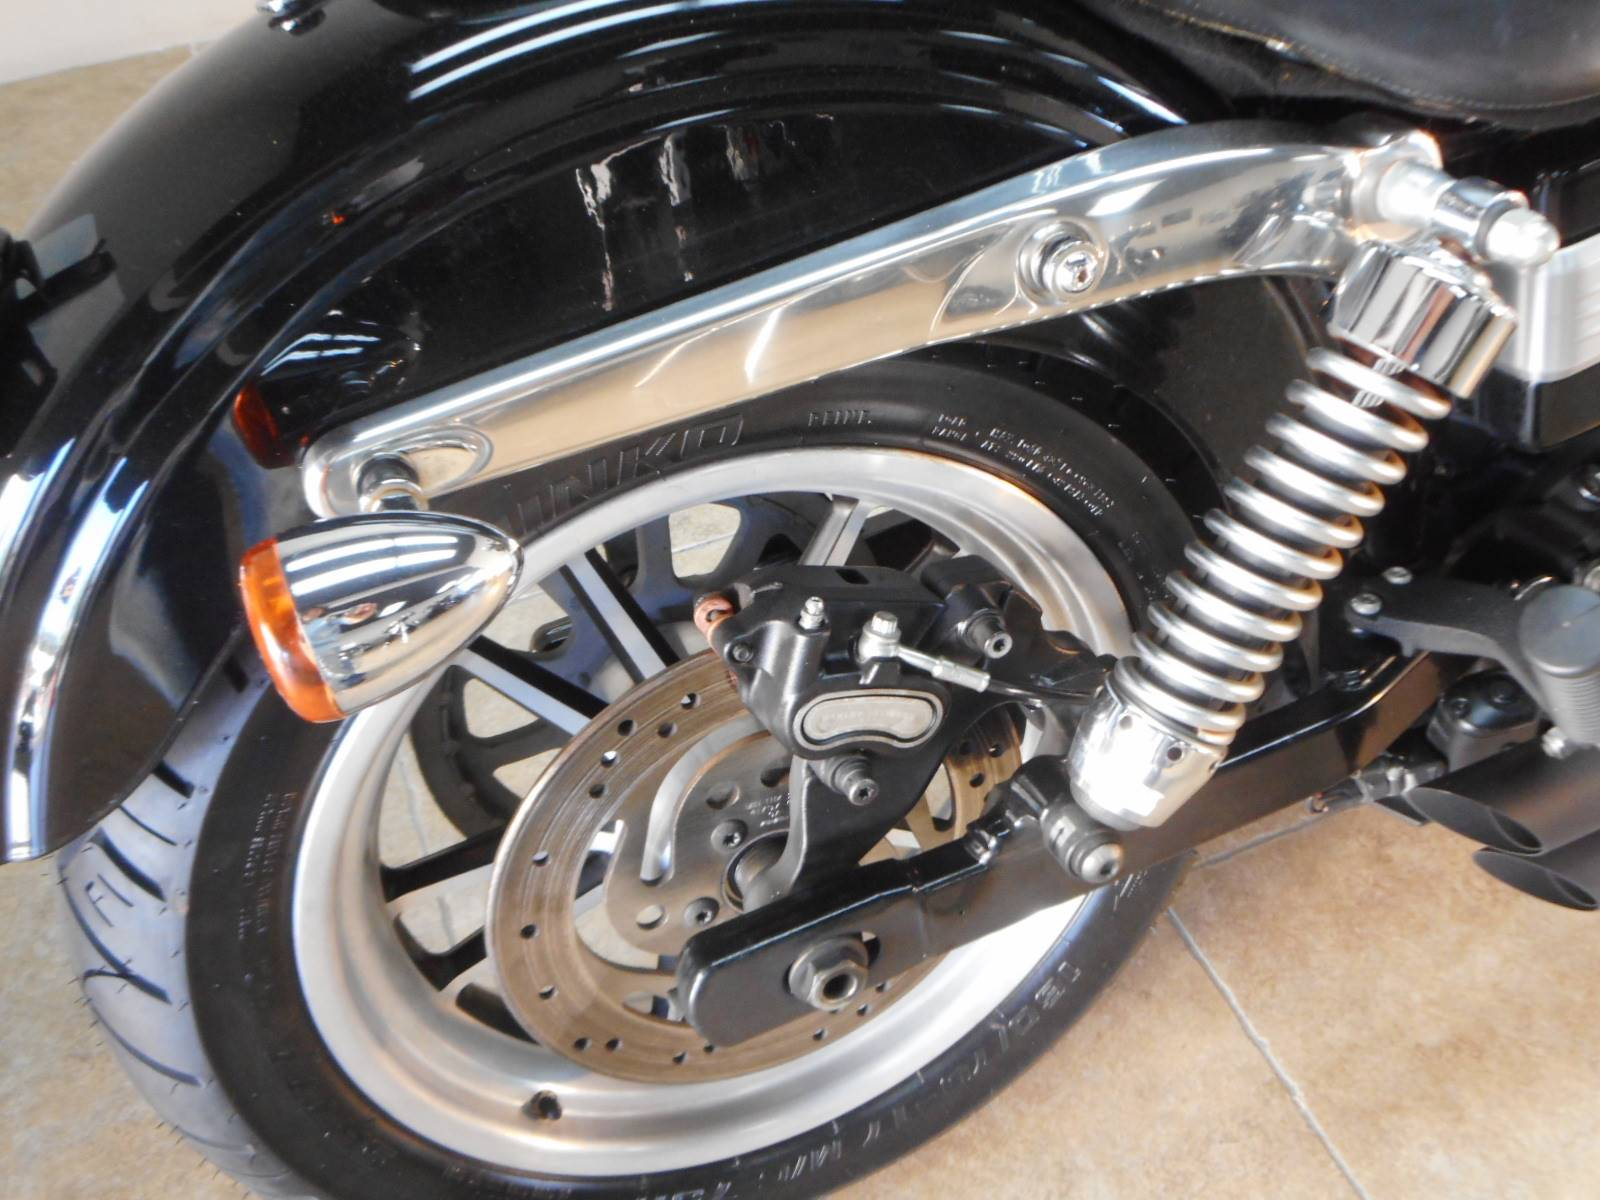 2009 Harley-Davidson Dyna® Super Glide® Custom in Temecula, California